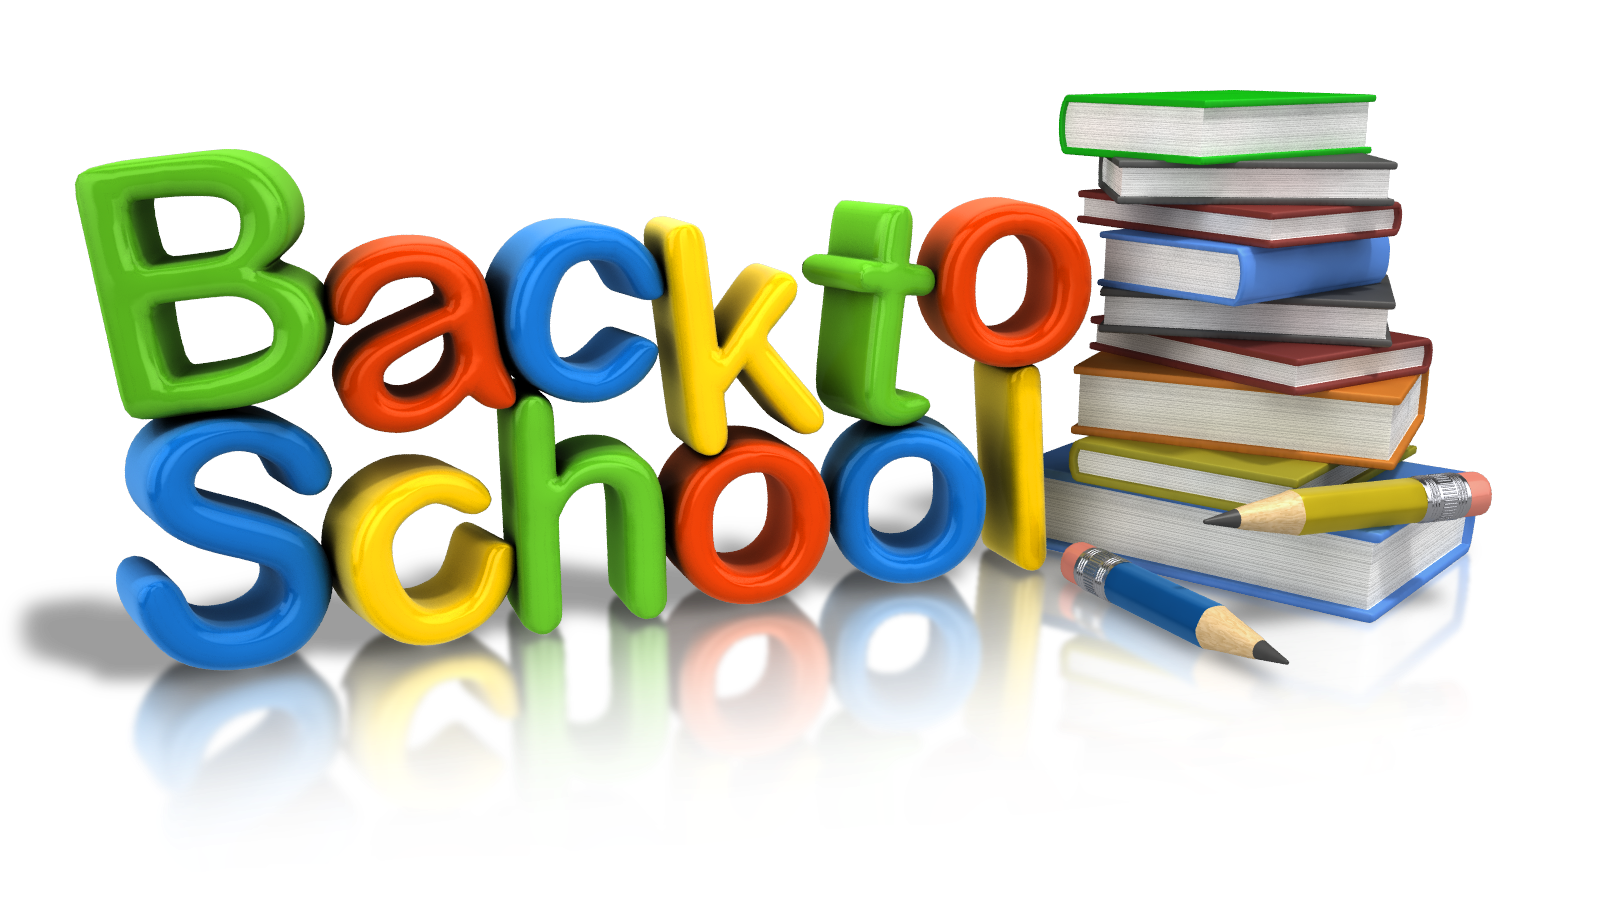 September school clipart image library download IHMS Online: Welcome Back To School! image library download